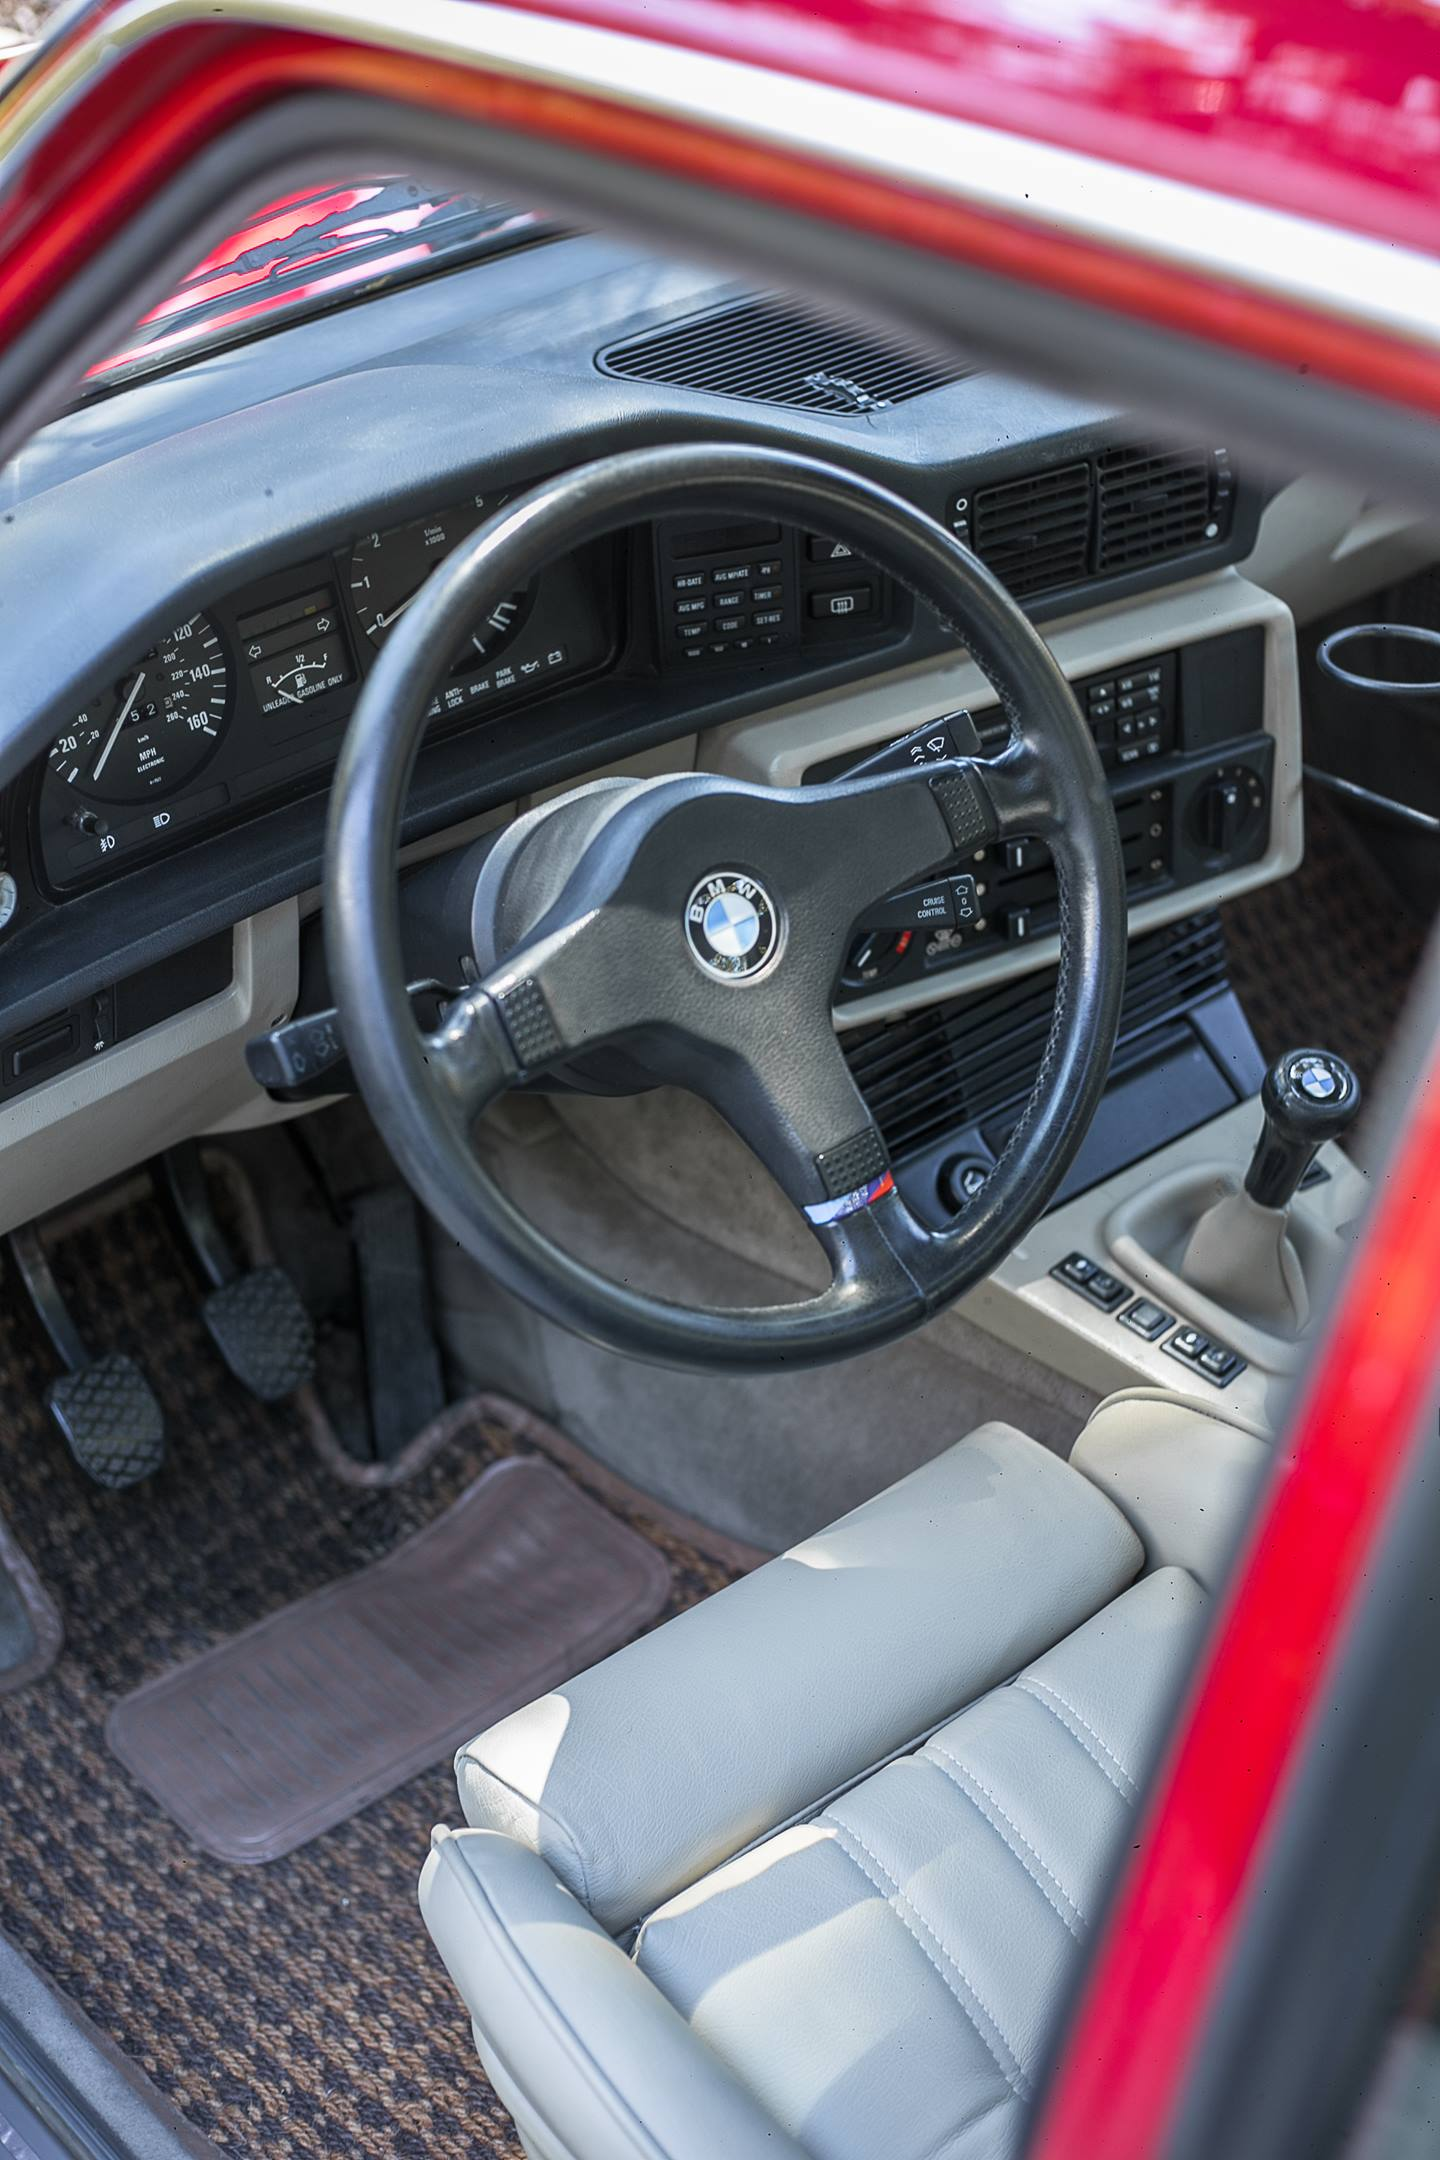 Austin Caccavo's 1987 BMW 535is interior